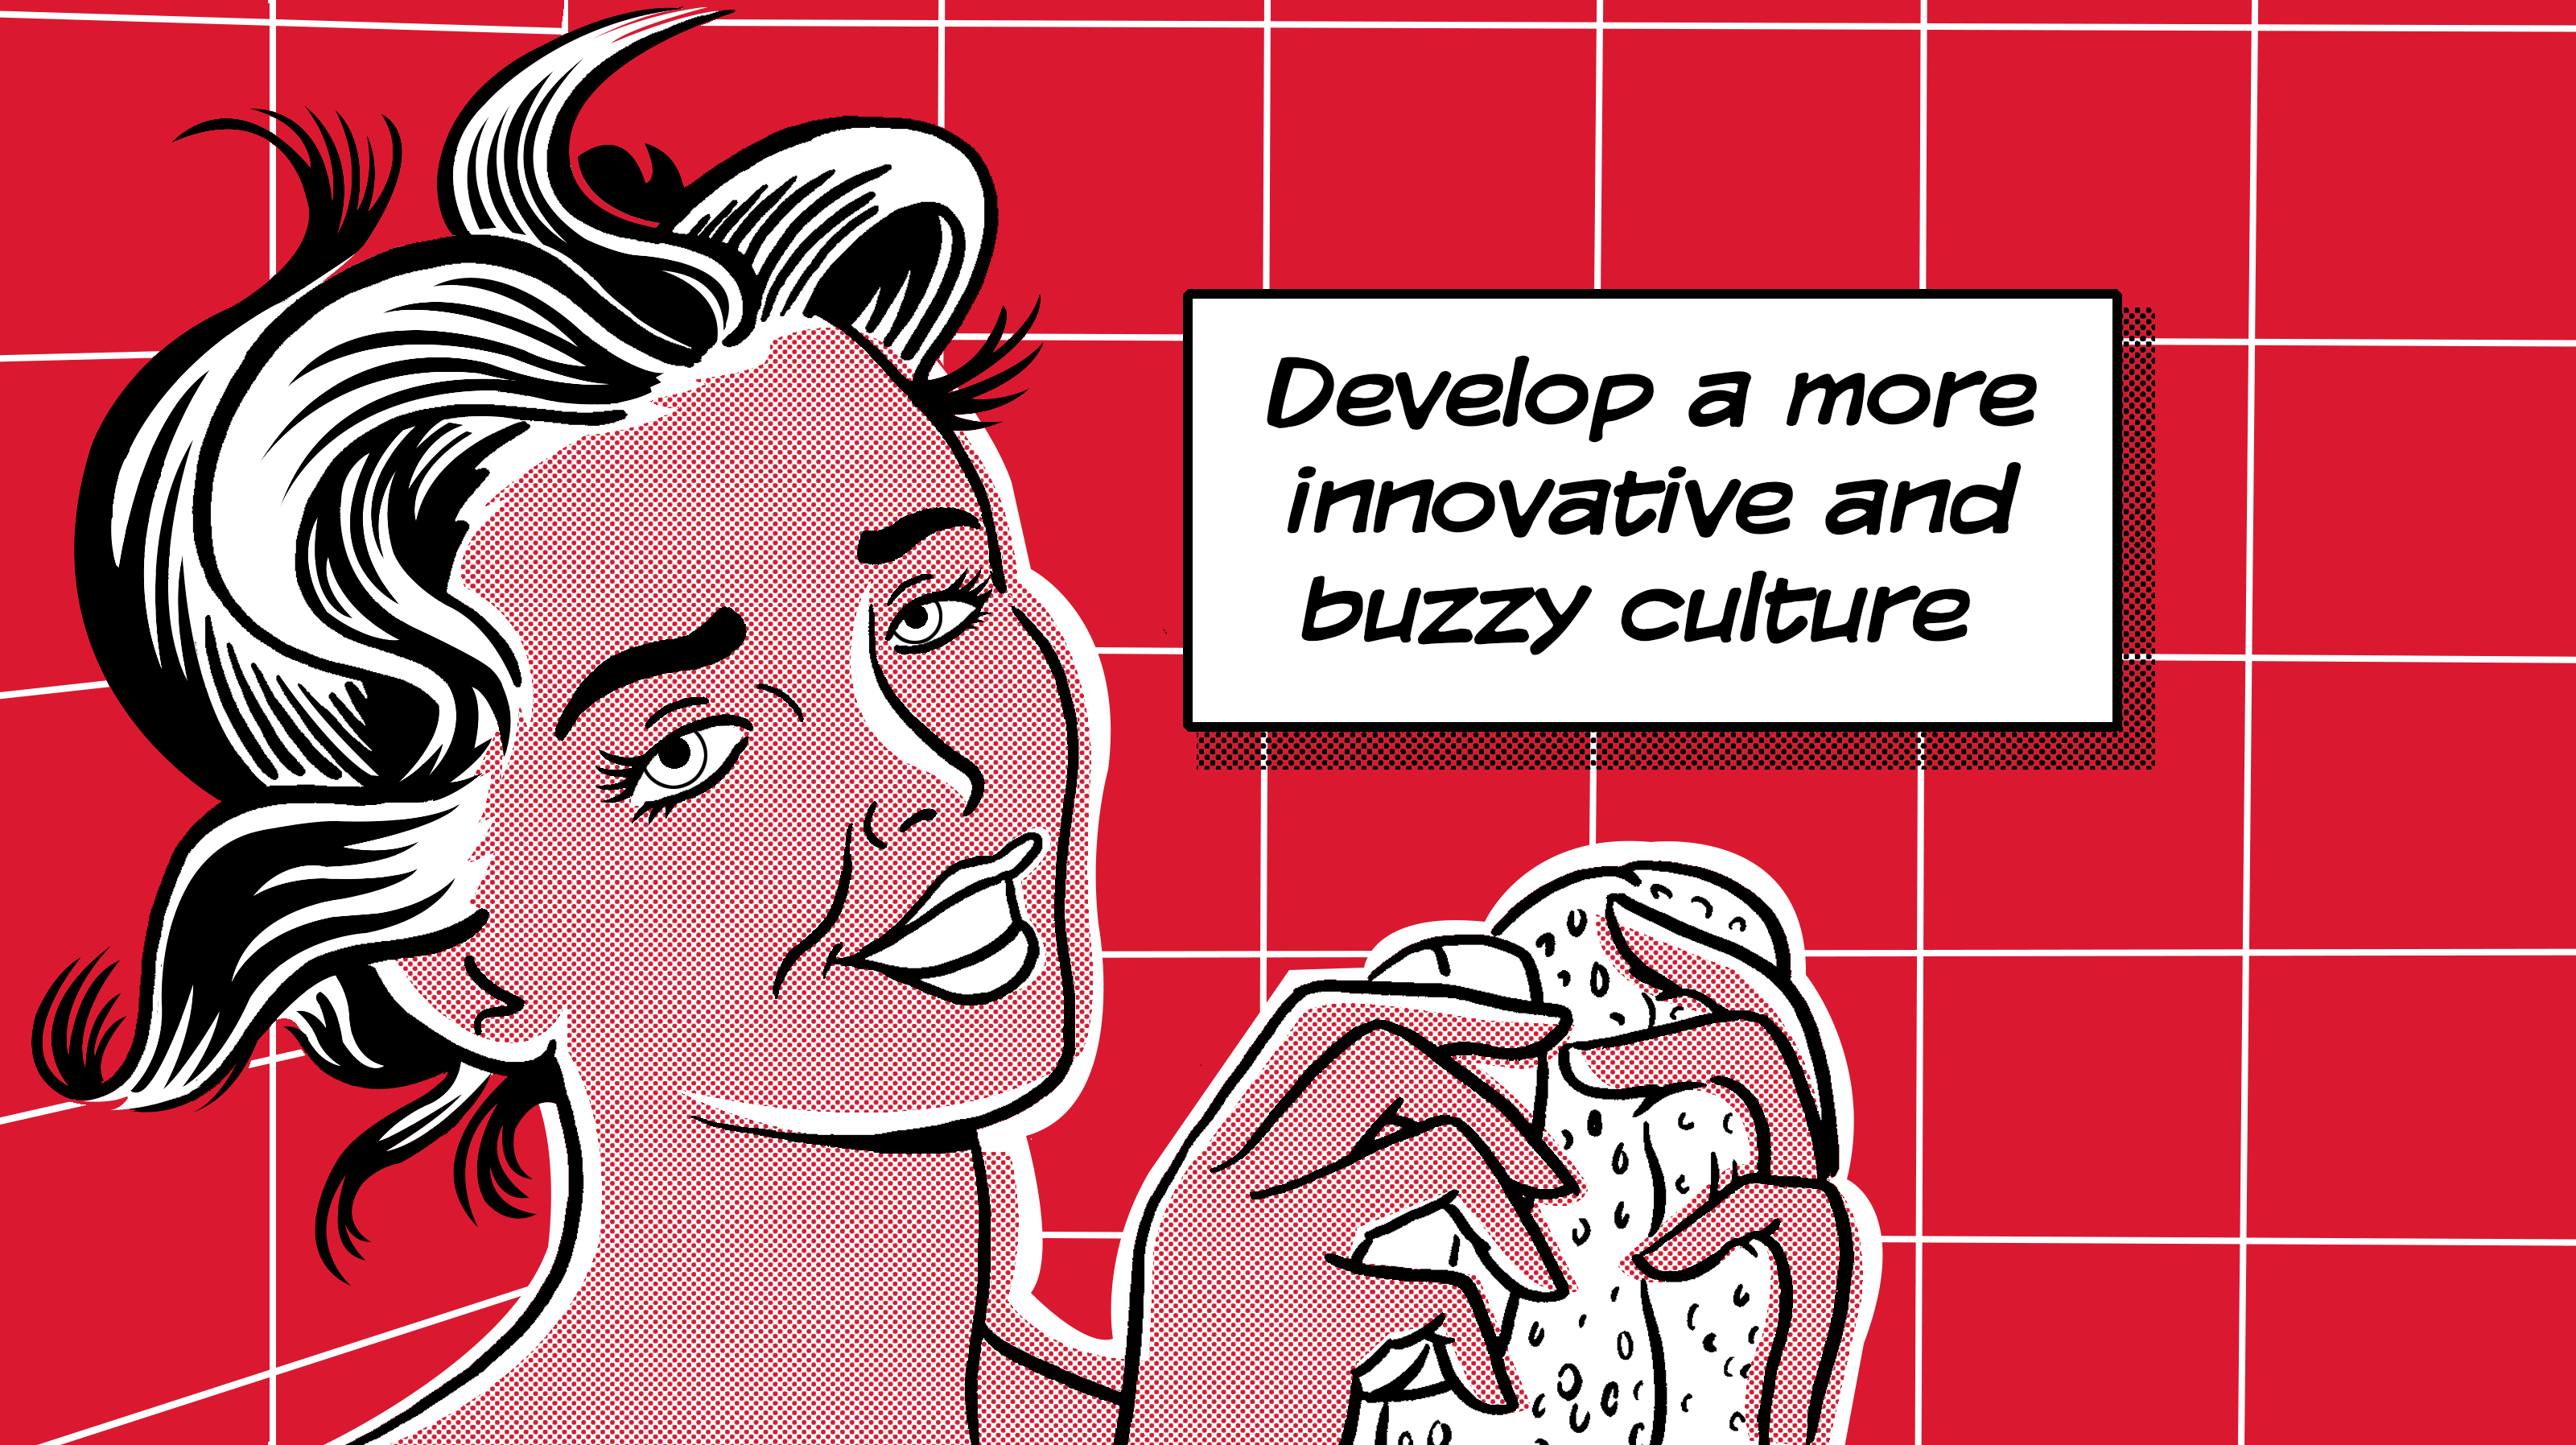 Women saying develop a more innovative and buzzy culture